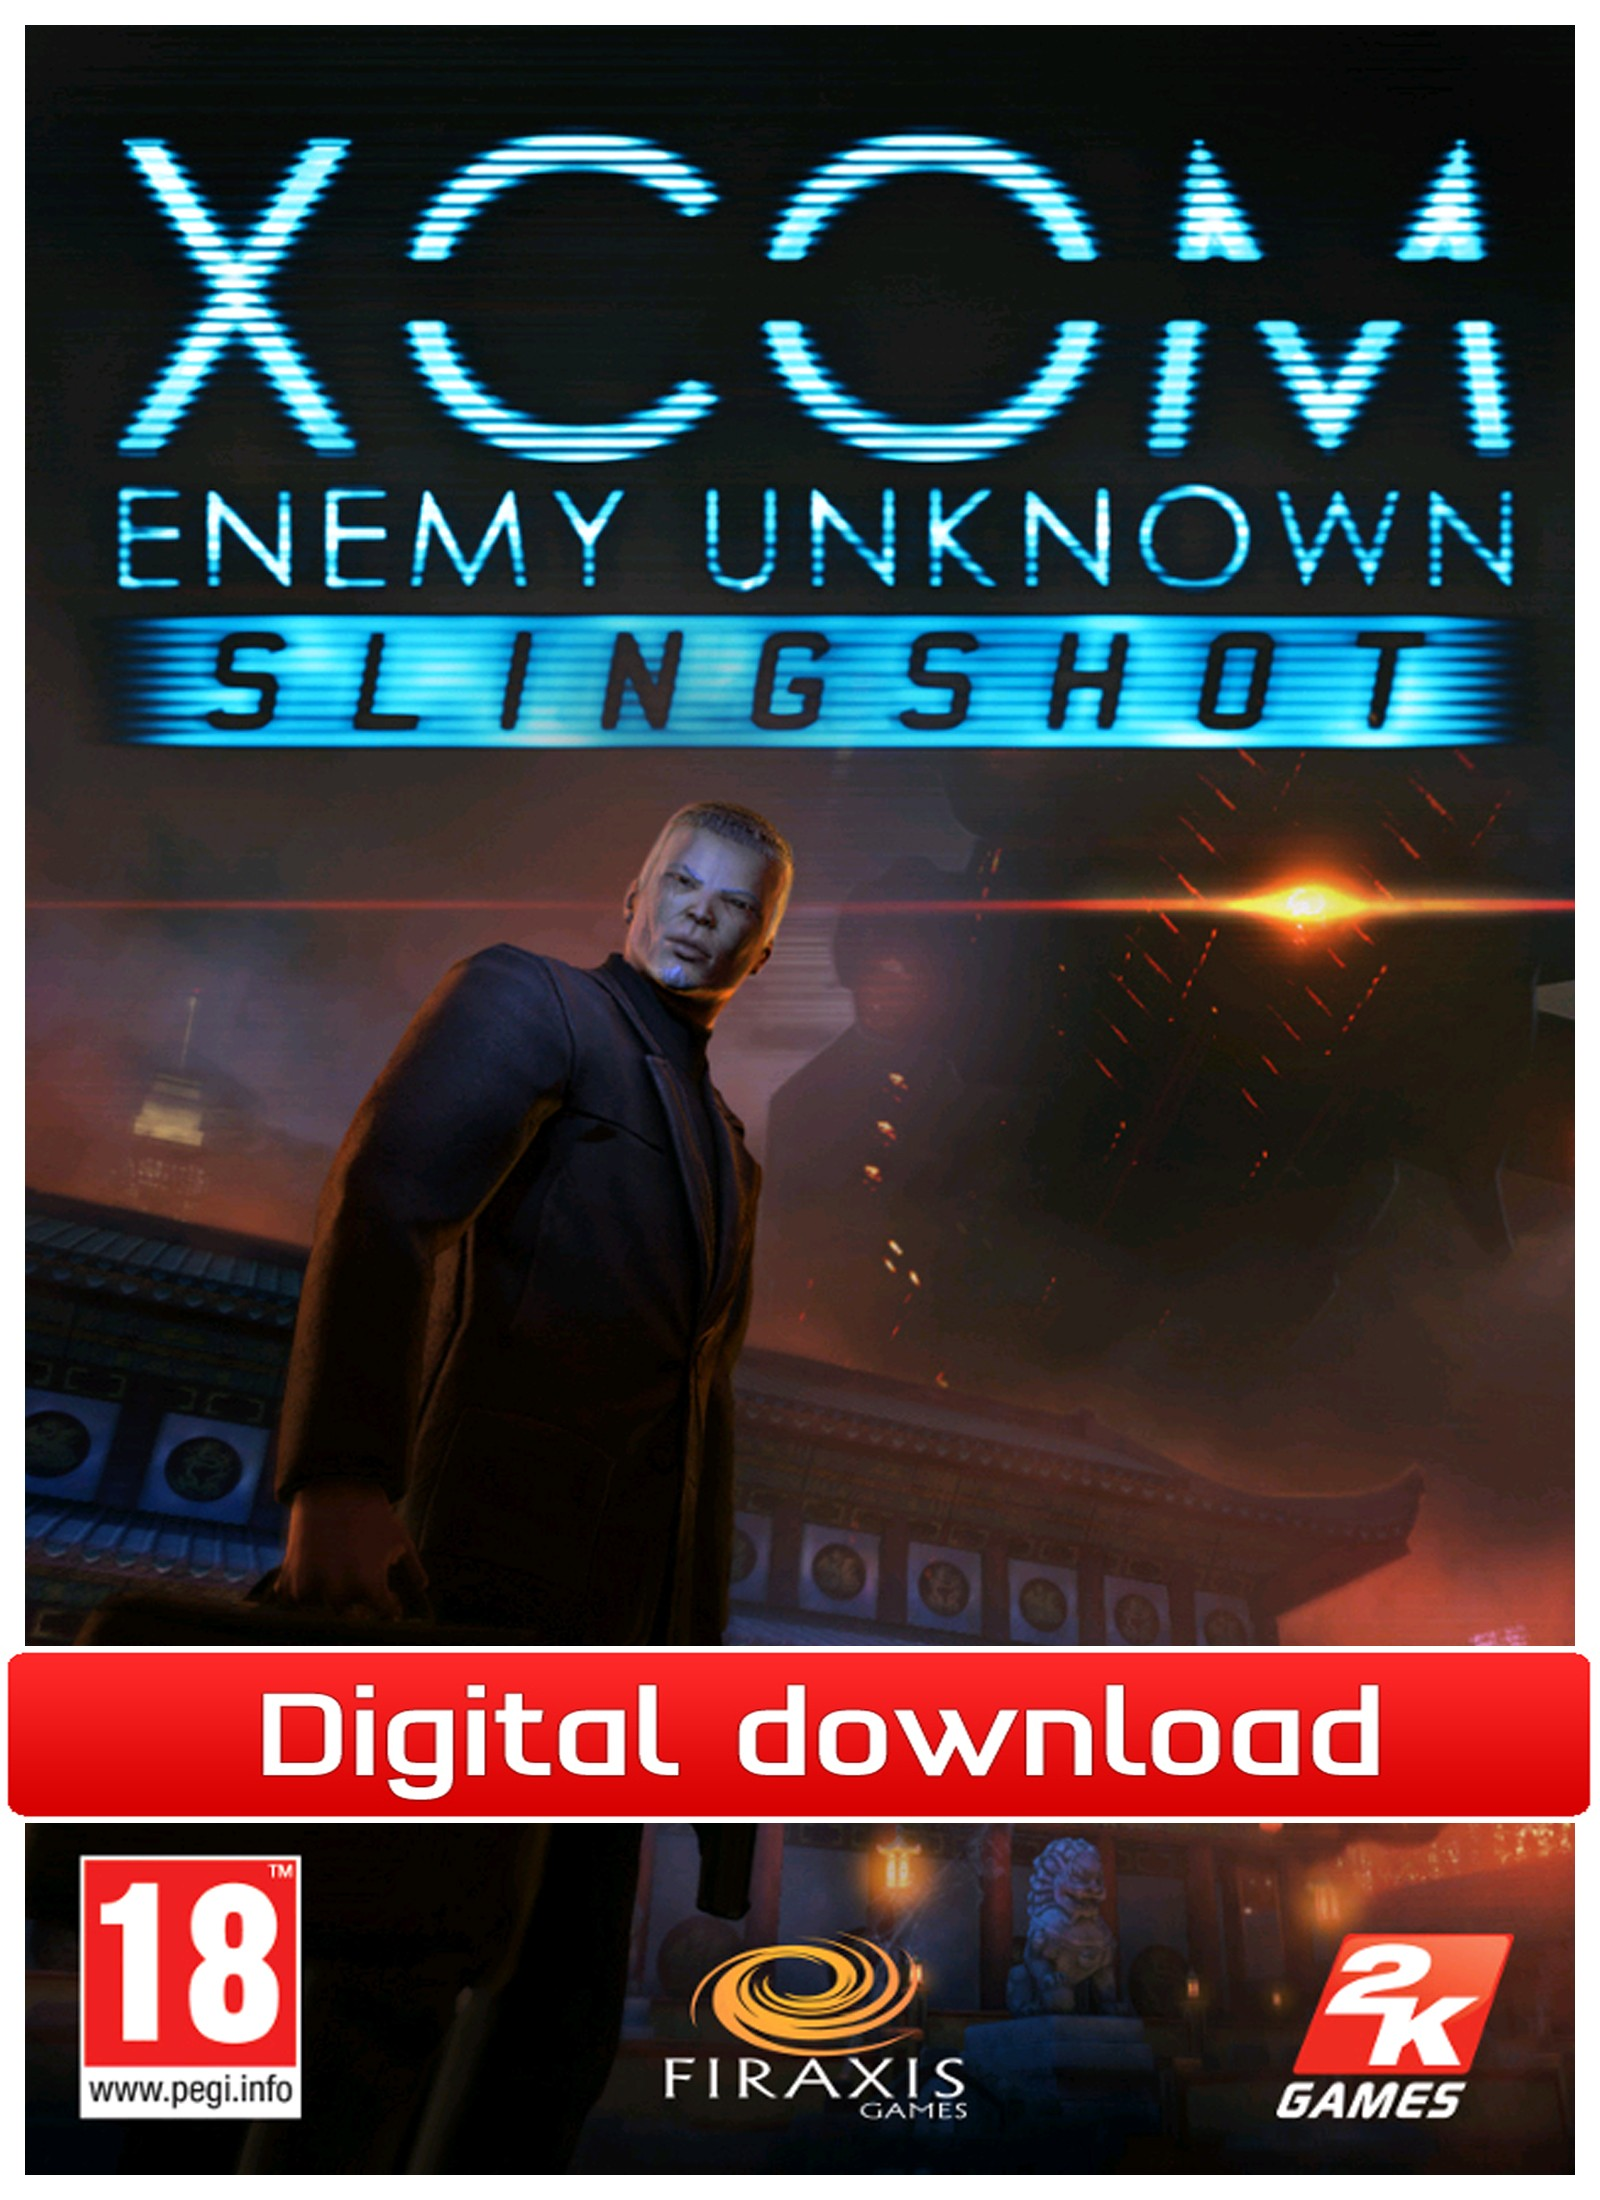 31266 : XCOM: Enemy Unknown – Slingshot (PC nedlastning)